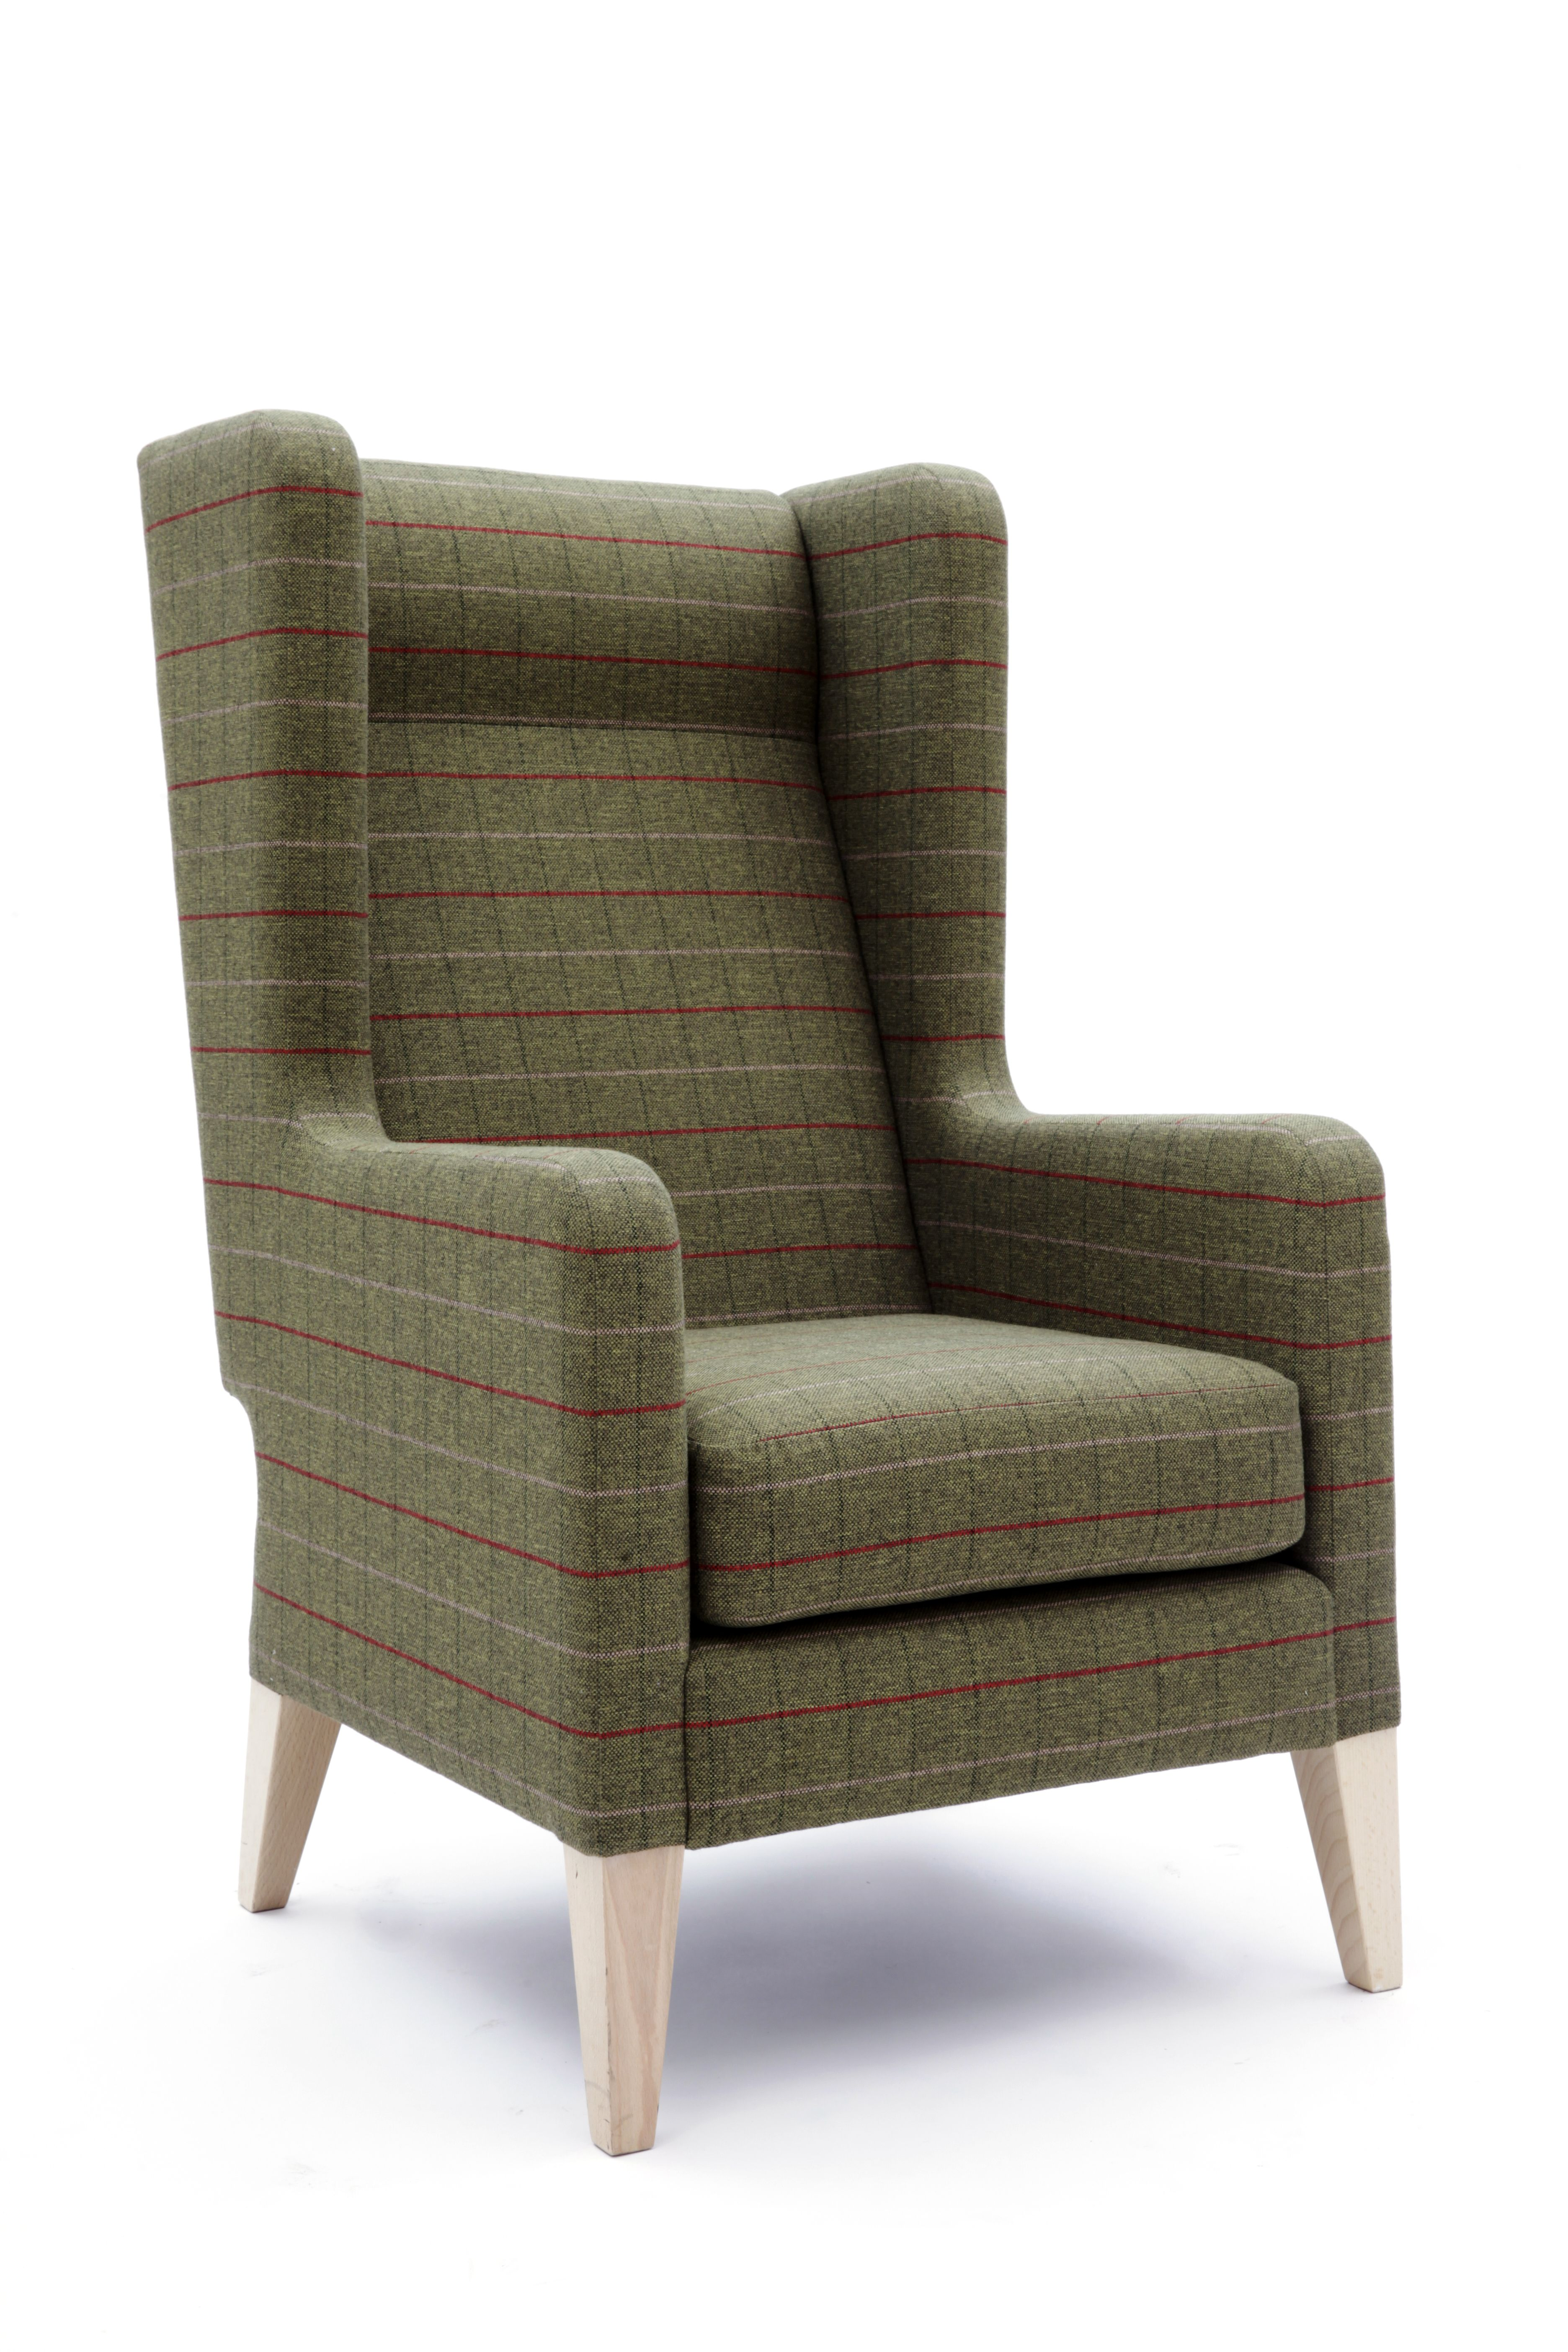 Jilly High Back Armchair From Knightsbridge Furniture